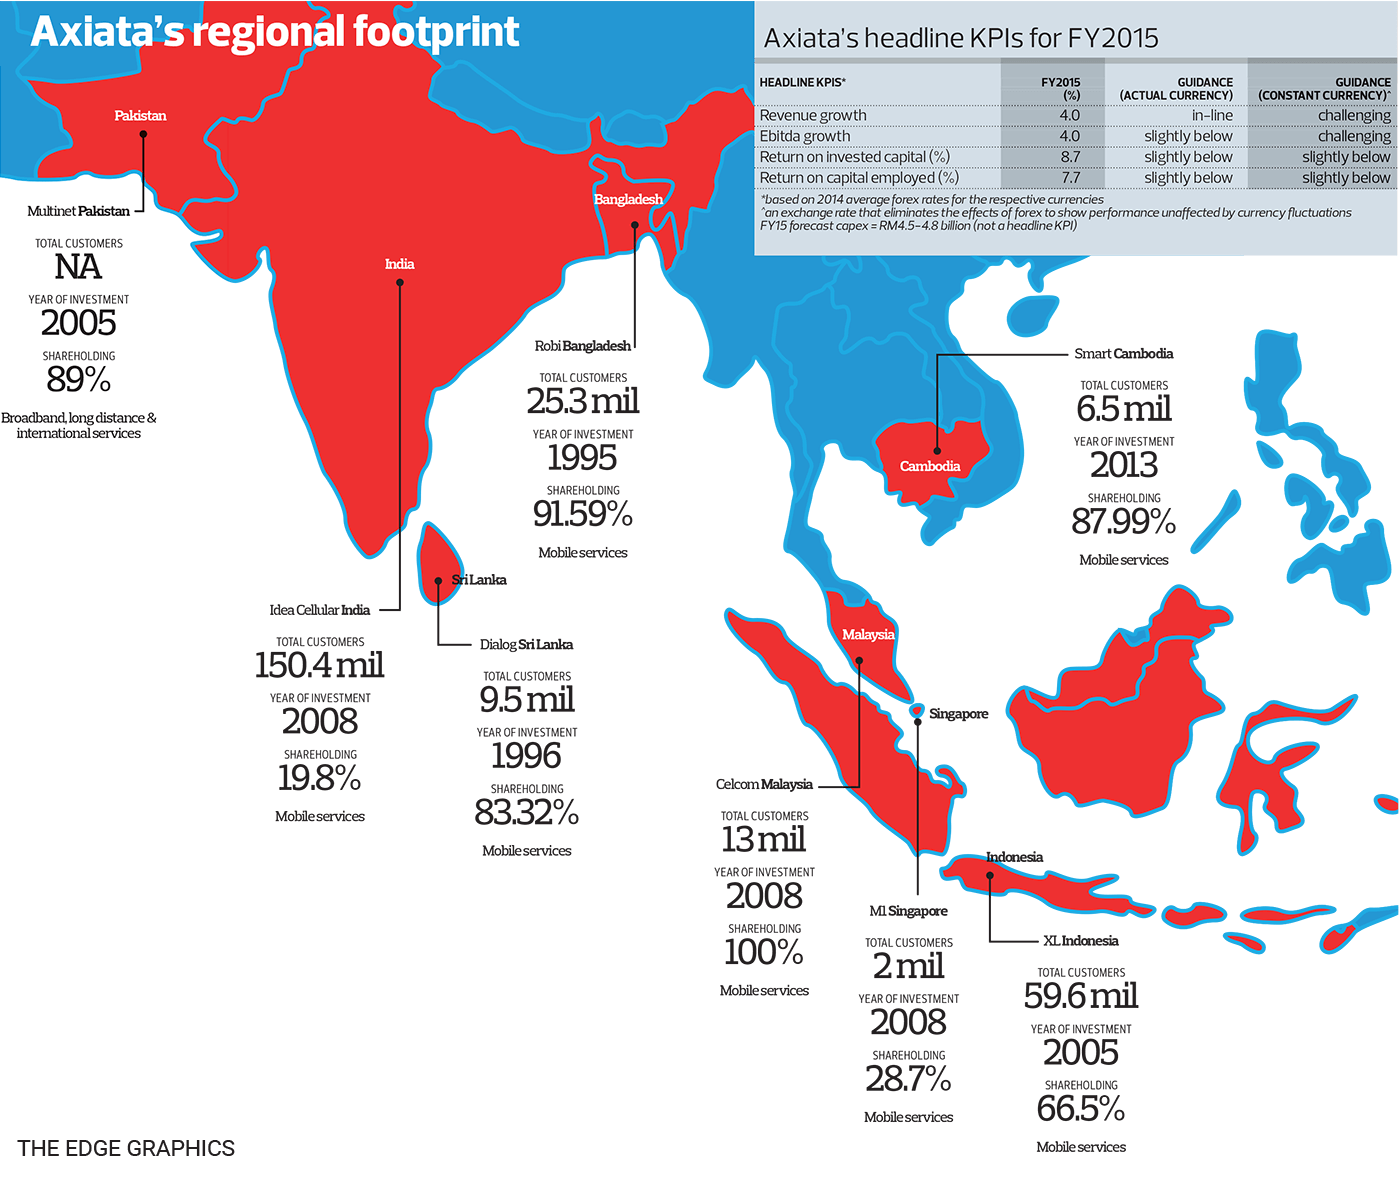 Axiata's regional footprint